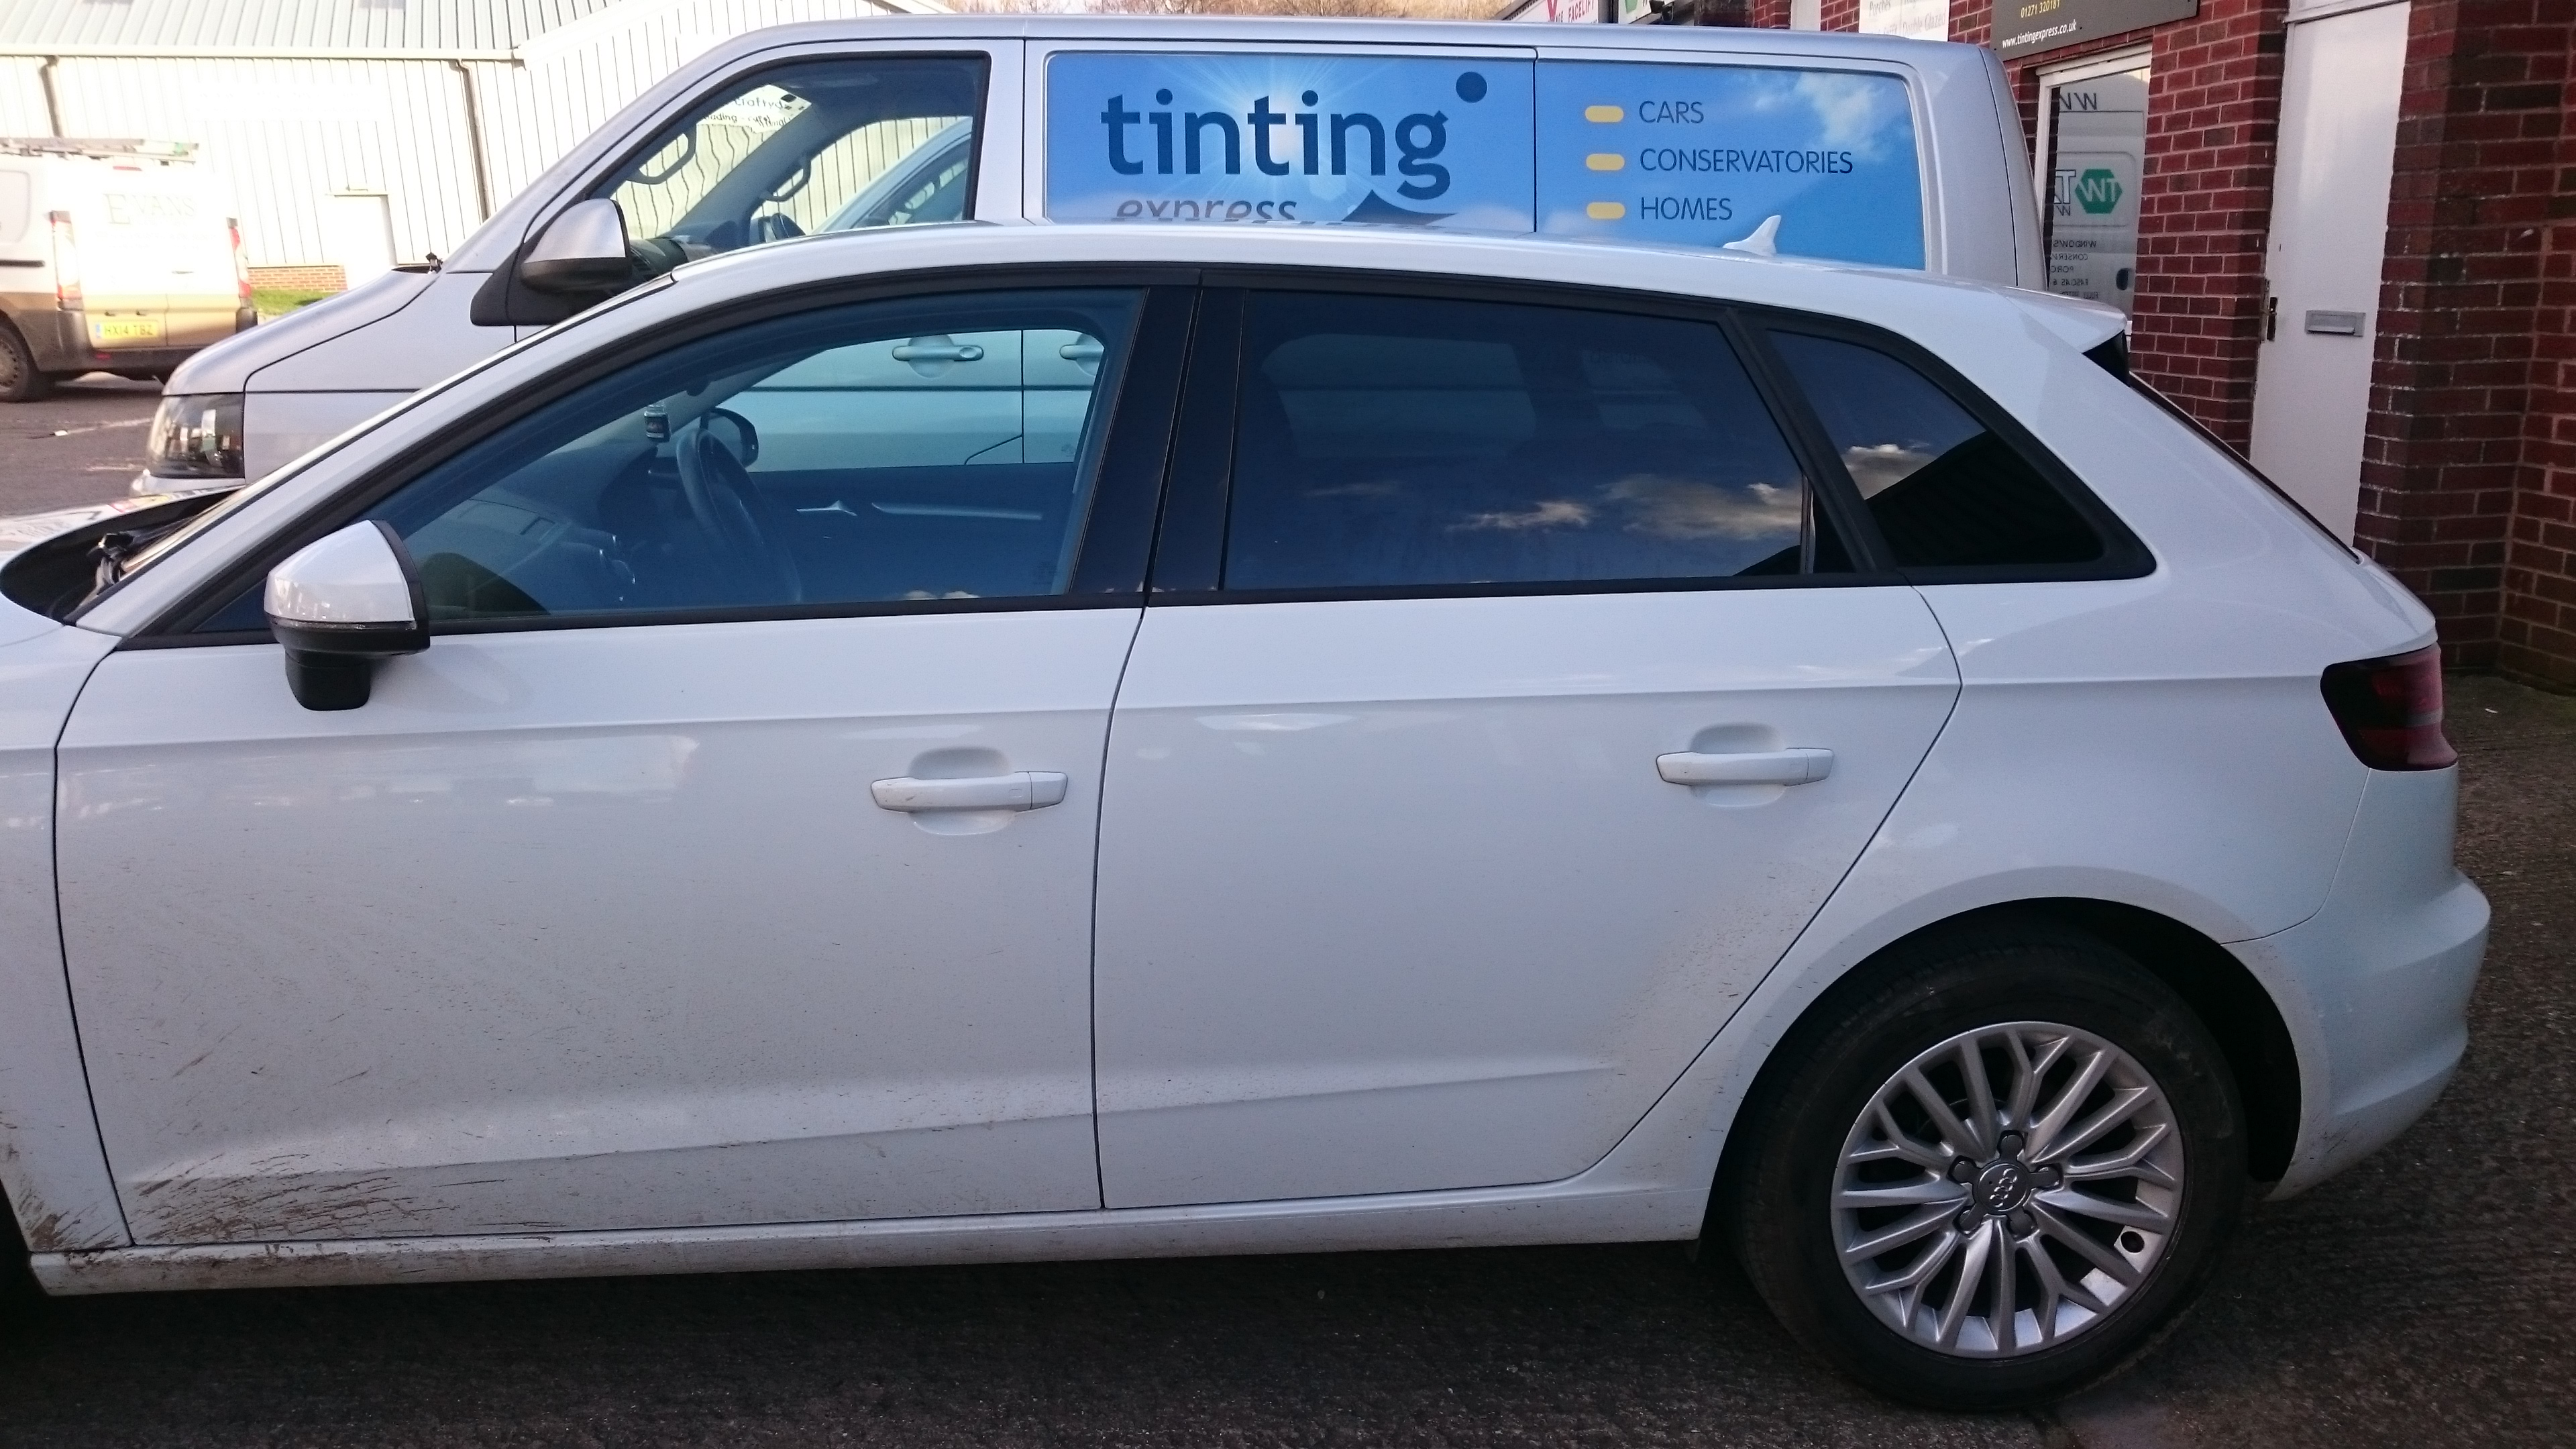 Audi A3 five door hatchback tinted with Llumar ATC 20 automotive window film. Tinting Express Barnstaple's number one window tinting company